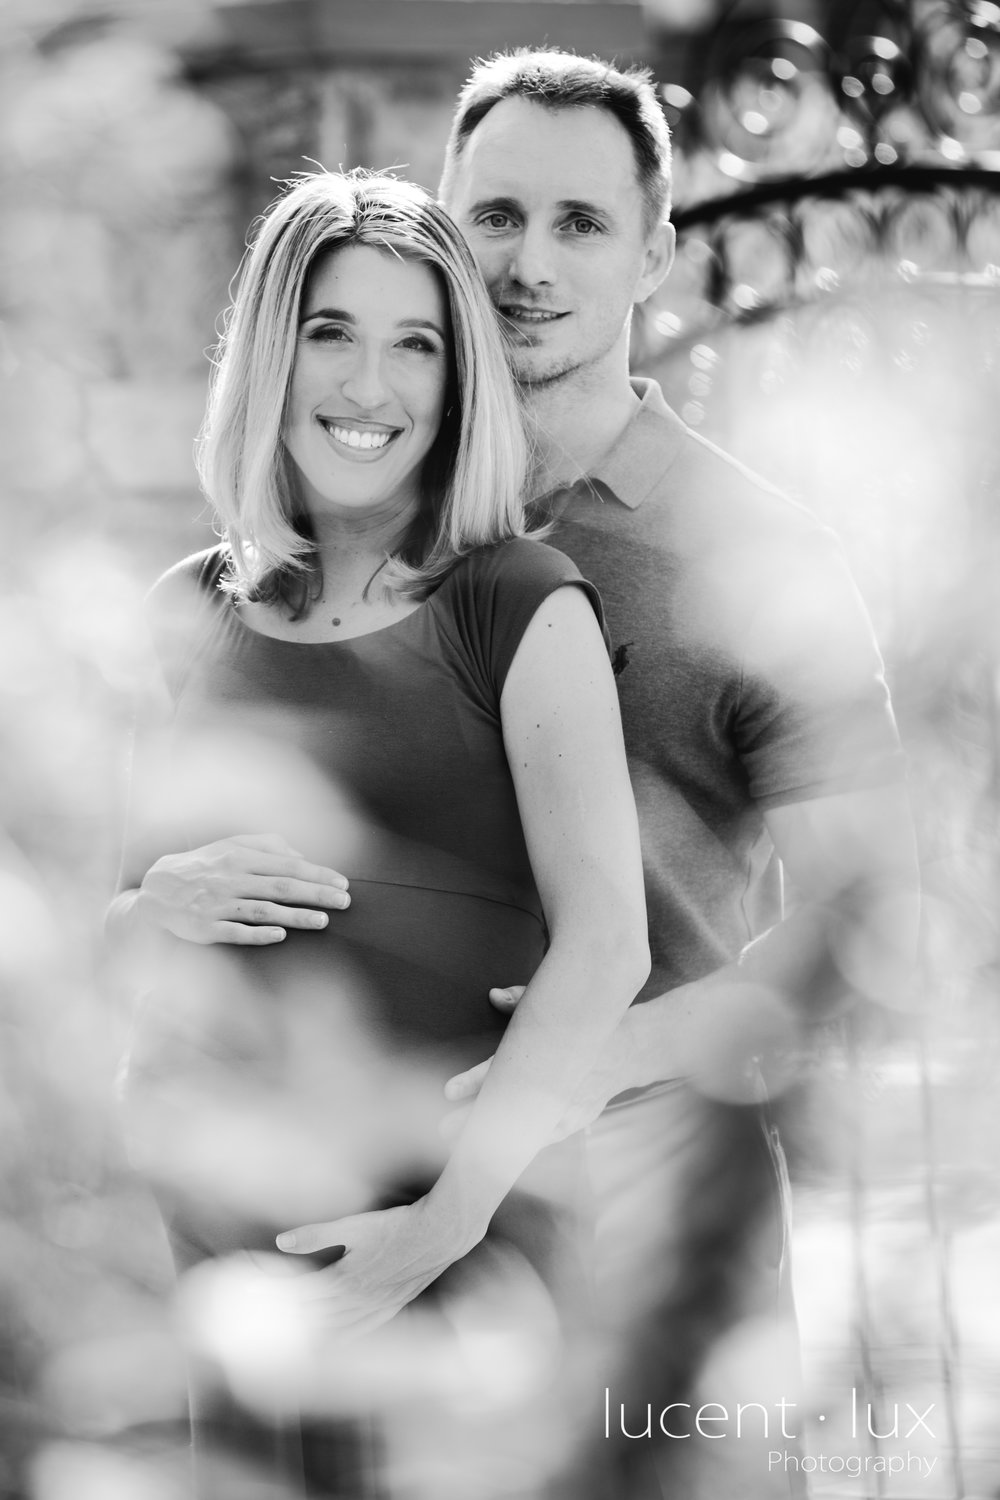 Maternity-Photography-Maryland-Baltimore-Photographer-Family-Portraits-Couple-Engagement-Newborn-100.jpg